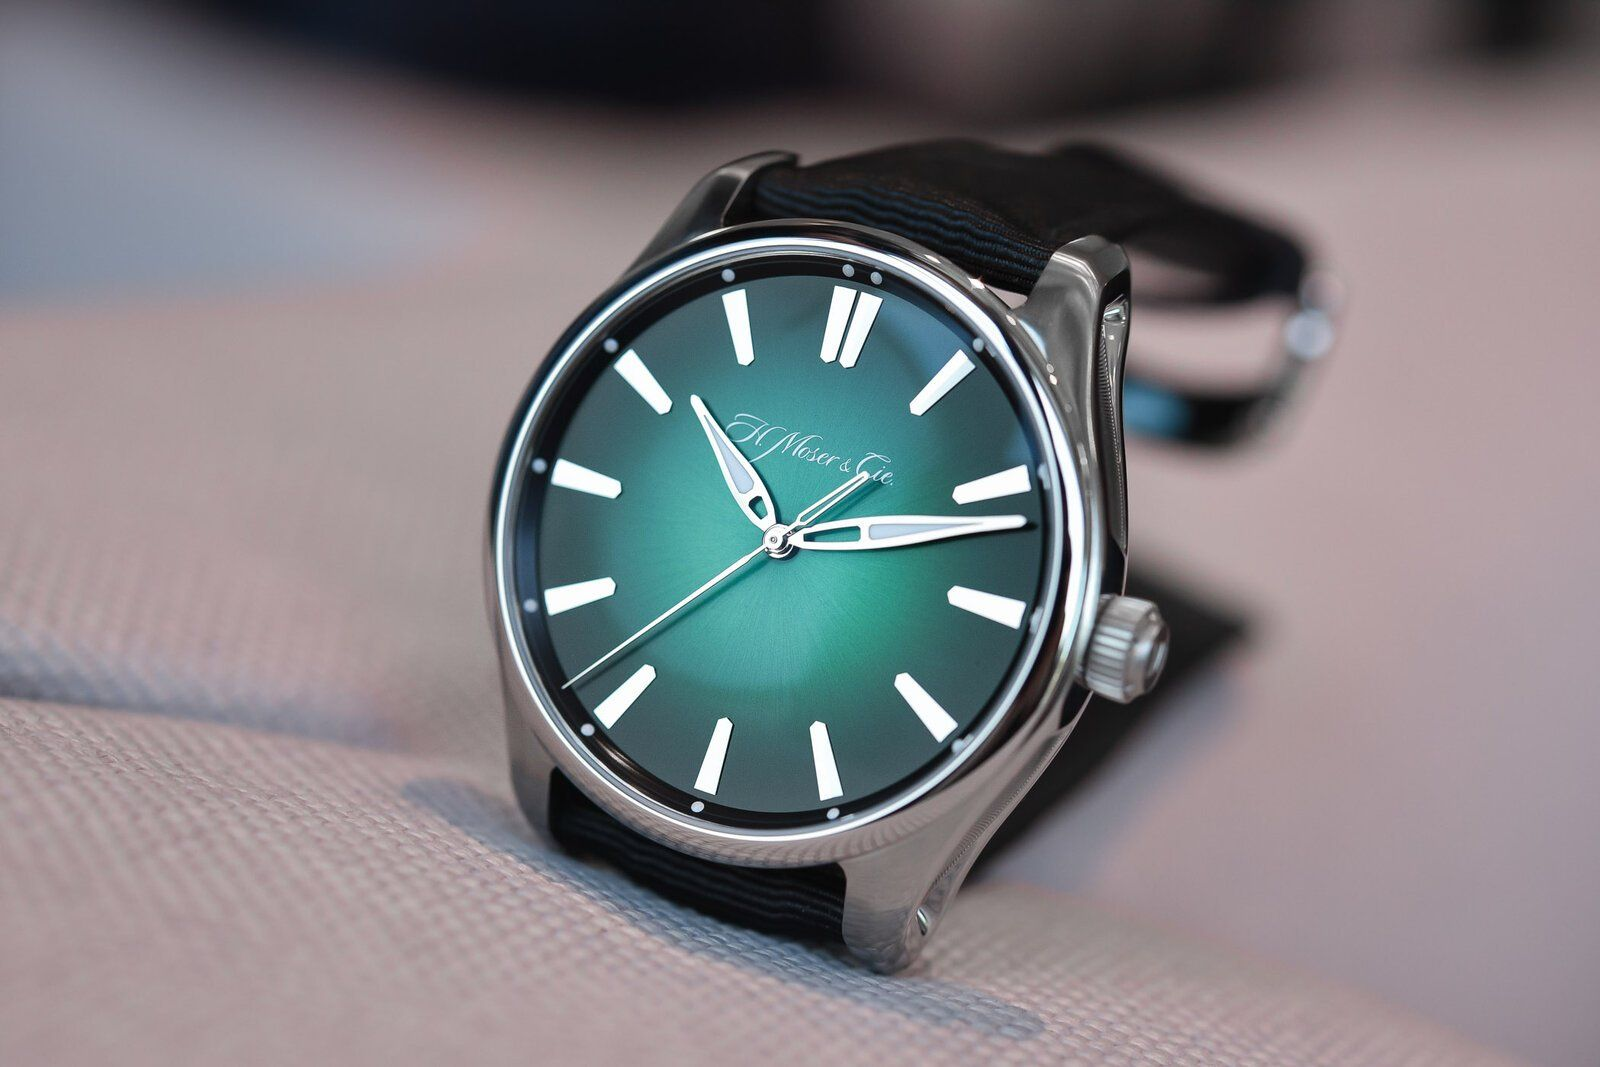 H.-Moser-Cie-Pioneer-Centre-Seconds-Cosmic-Green-reference-3200-1202-4.jpg